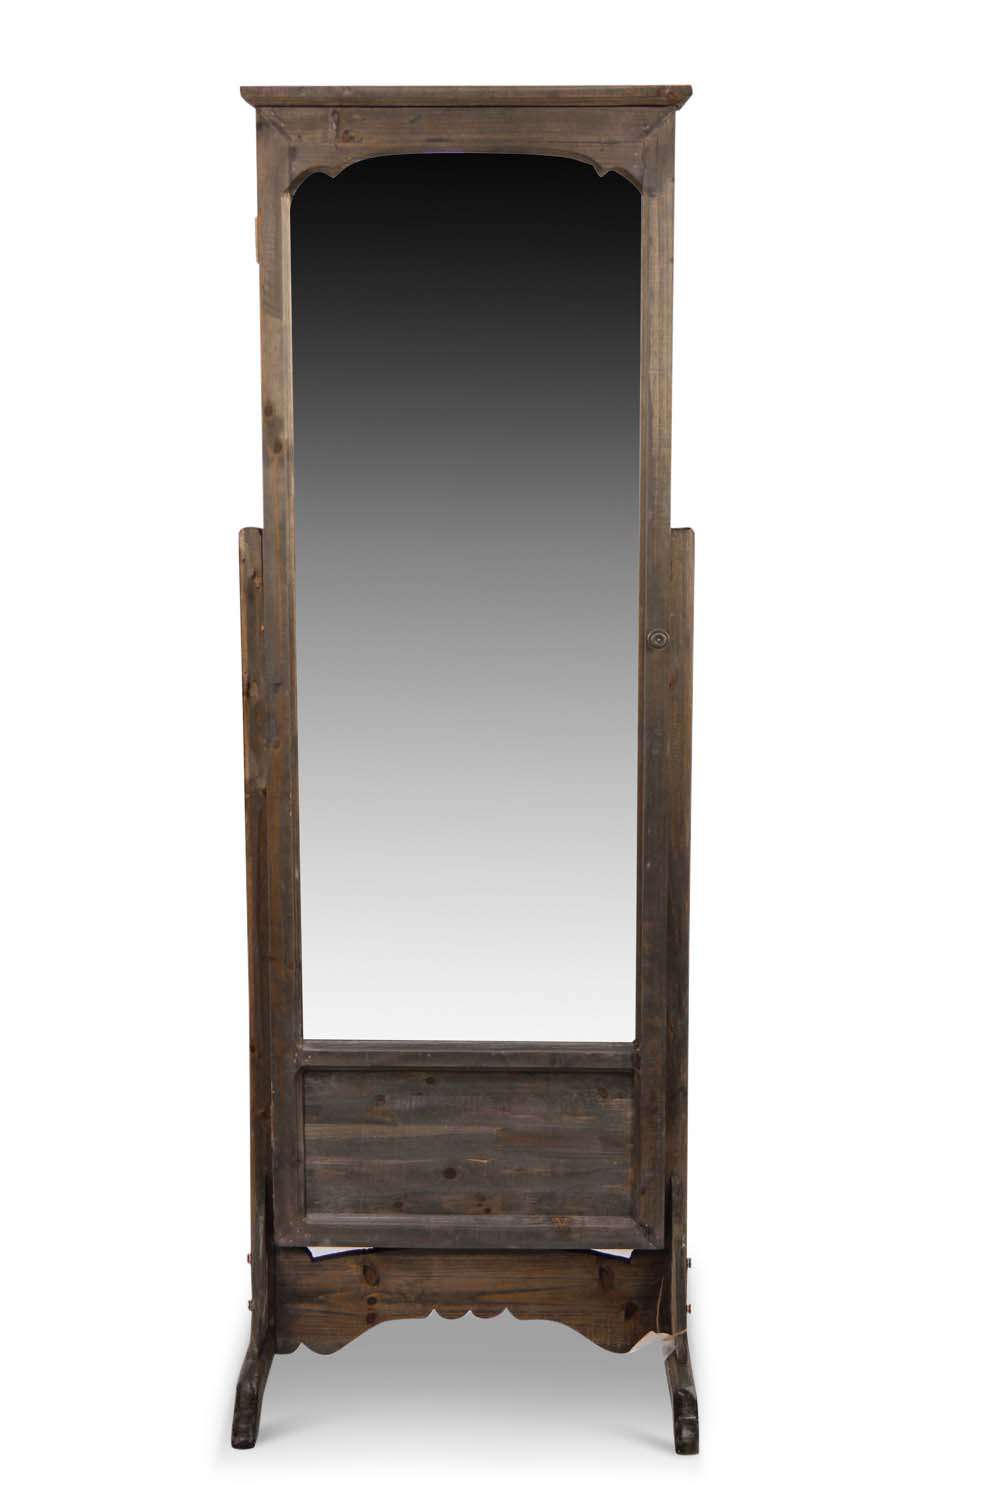 miroir ancien rectangulaire vertical sur pied bois. Black Bedroom Furniture Sets. Home Design Ideas